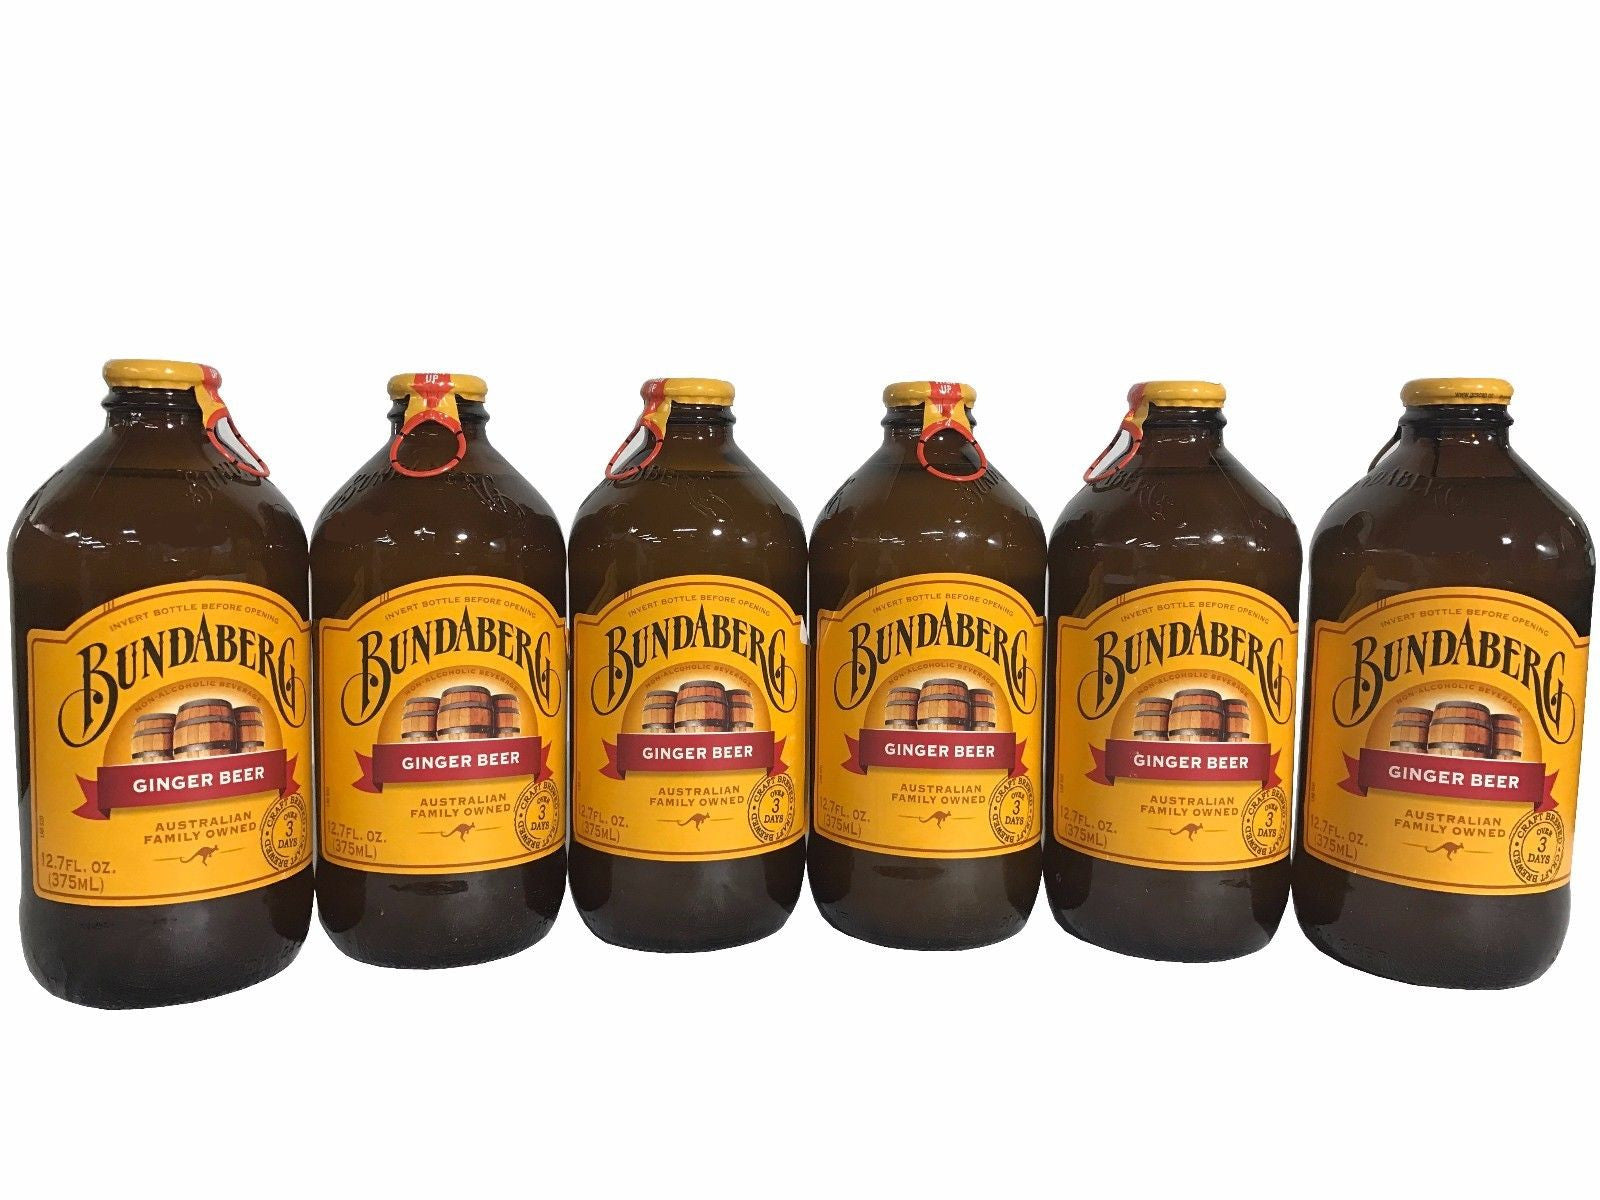 Bundaberg Ginger Beer Australian Craft Brewed Over 3 Days Non Alcoholic - 6 Pack